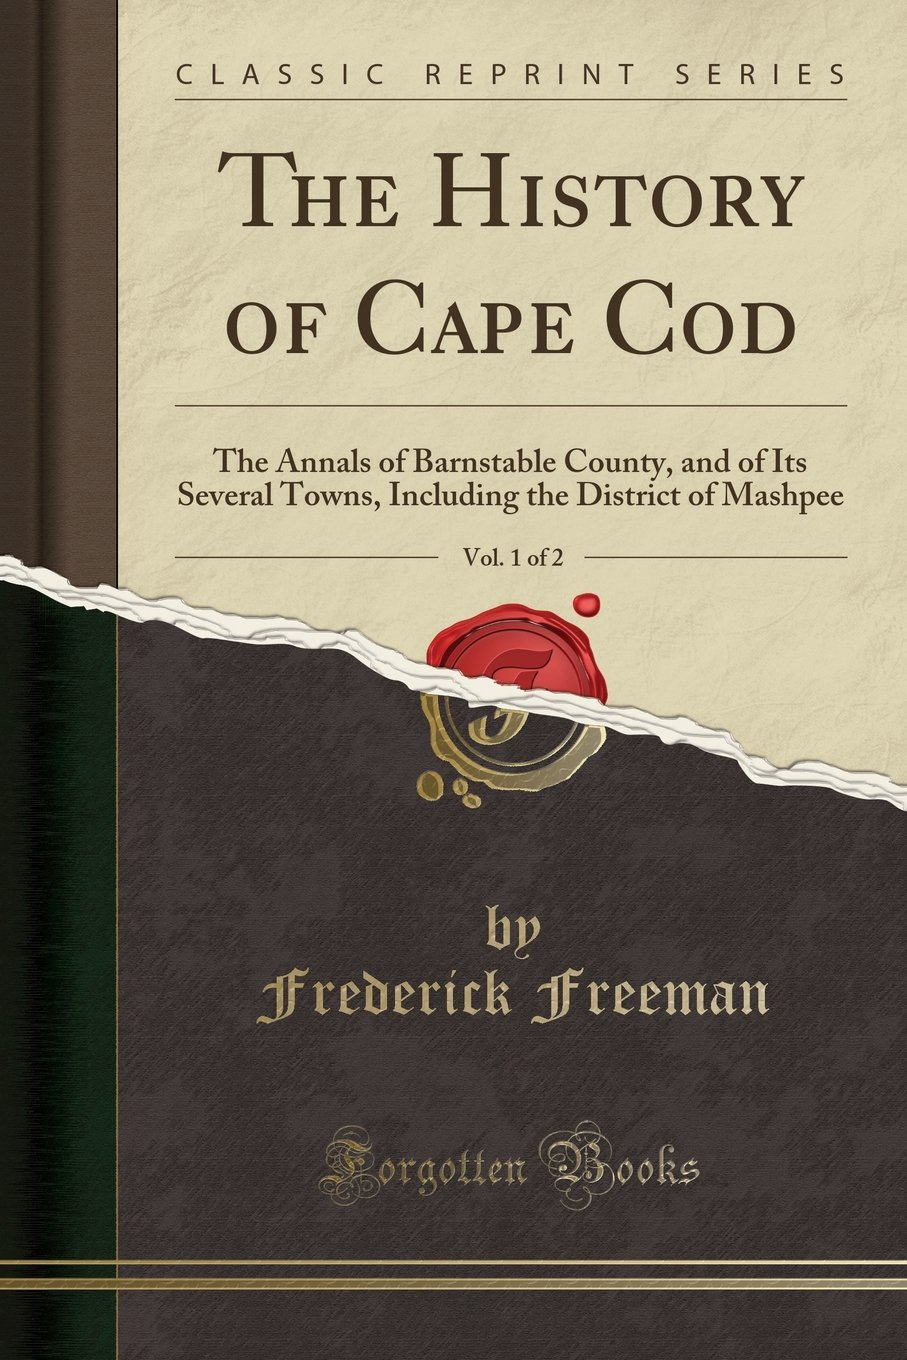 Download The History of Cape Cod, Vol. 1 of 2: The Annals of Barnstable County, and of Its Several Towns, Including the District of Mashpee (Classic Reprint) pdf